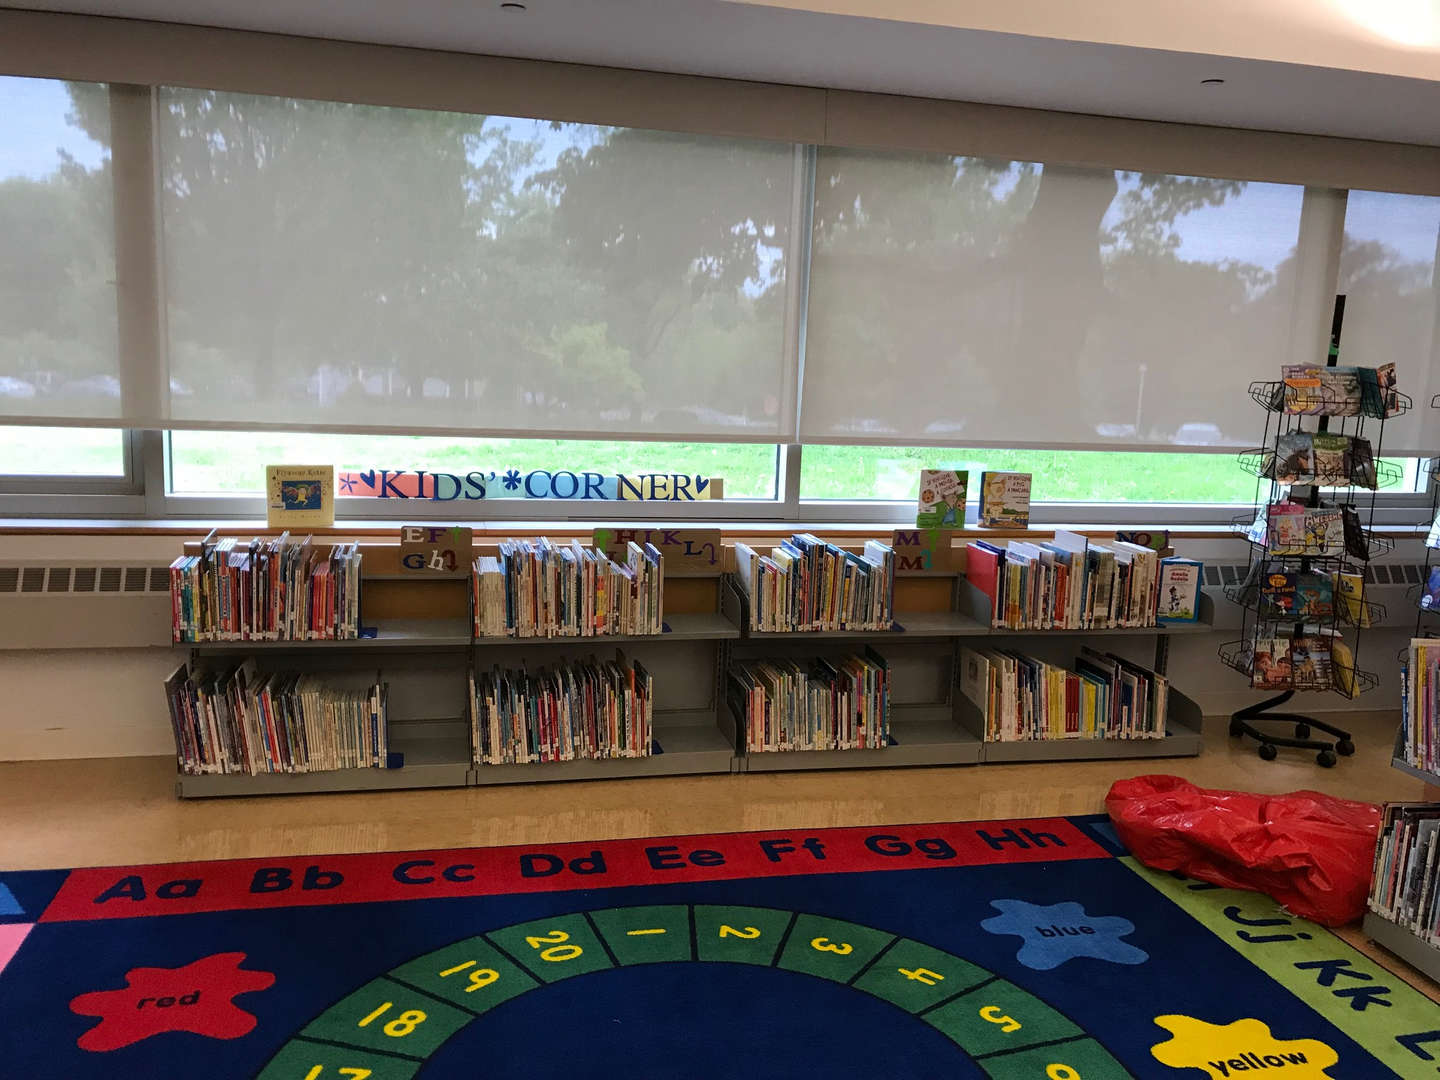 Windows with Kids' Corner written across and early reader books